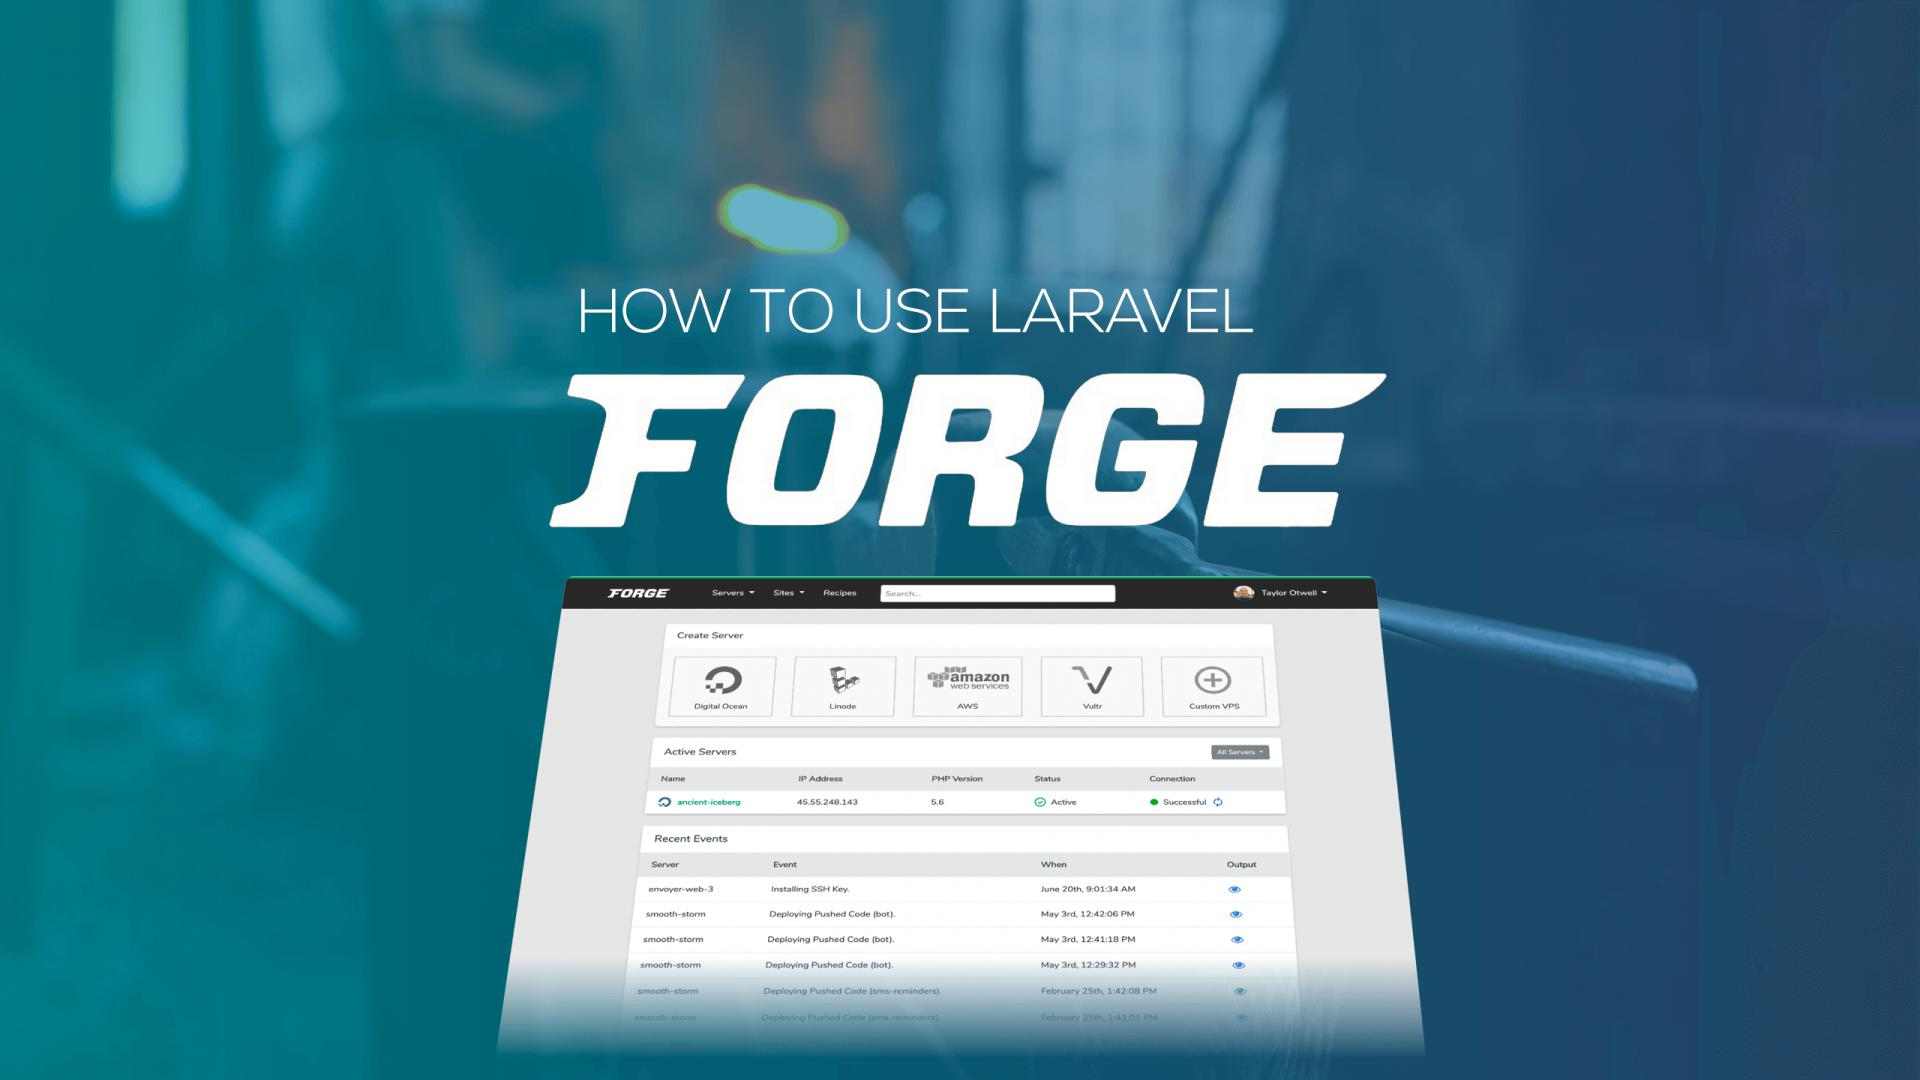 How to use Laravel Forge?